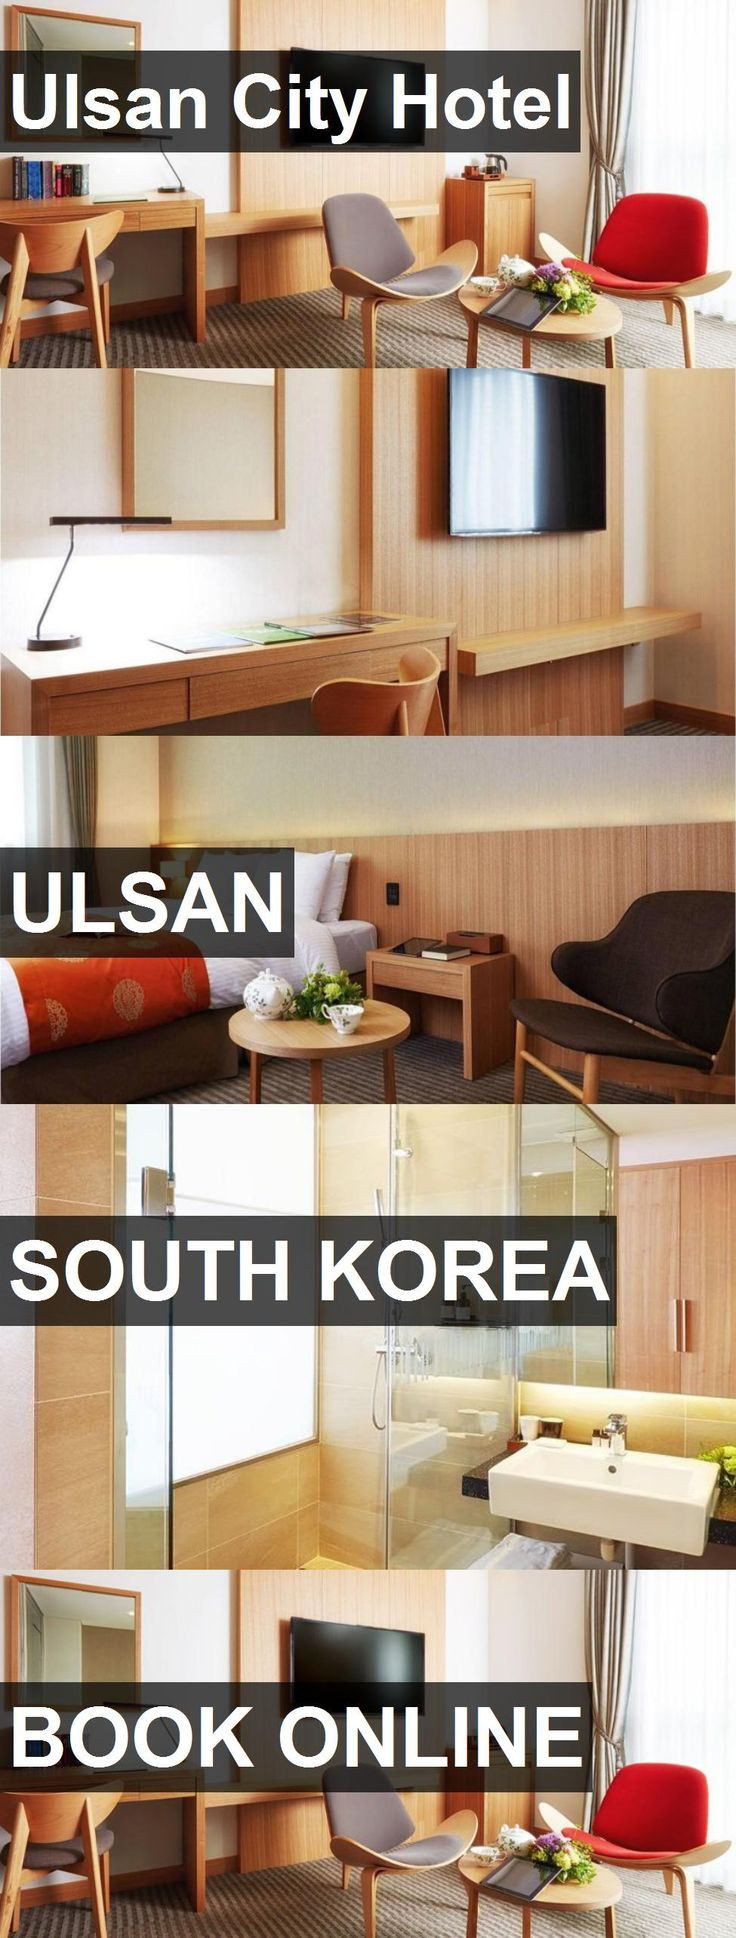 Ulsan City Hotel in Ulsan, South Korea. For more information, photos, reviews and best prices please follow the link. #SouthKorea #Ulsan #travel #vacation #hotel